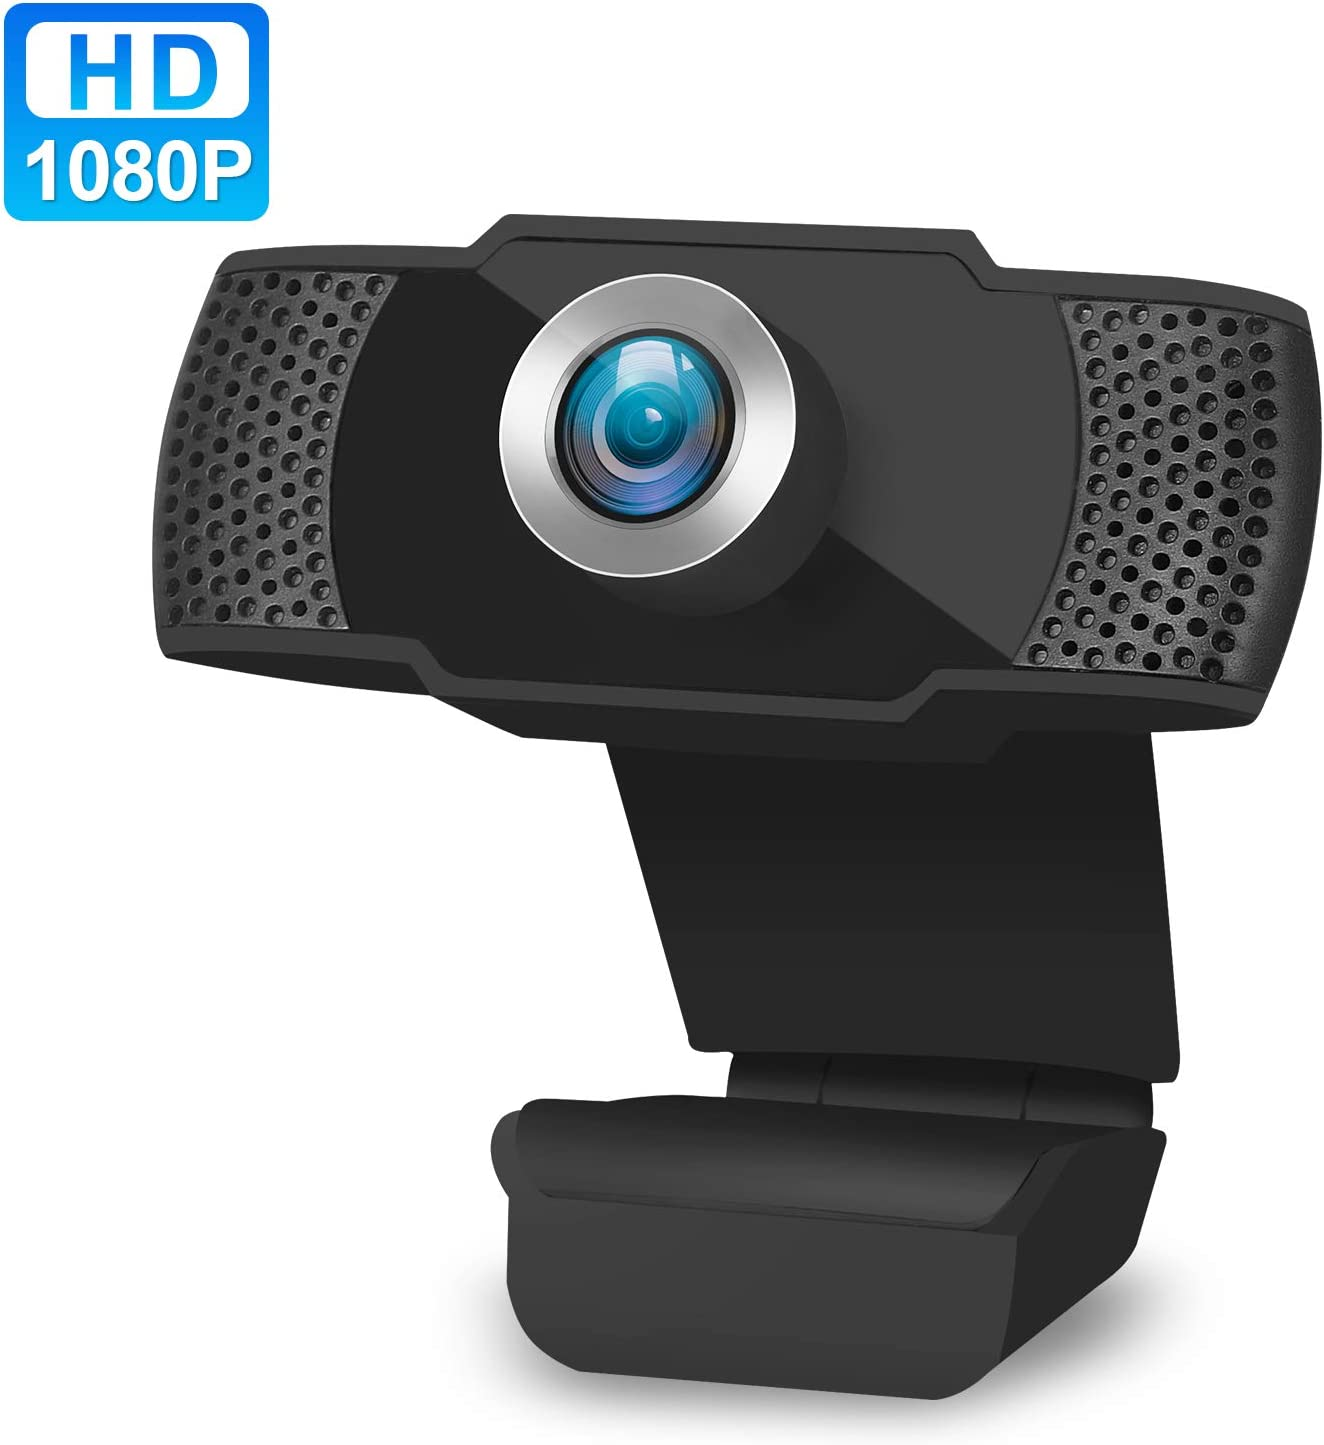 1080P USB HD Webcam, PC Cam 90 Degree Computer Web Camera with Auto Light Correction for Laptop/Desktop/TV with Mic for Video Streaming, Gaming, Recording, Studying, Online Classes (Black)